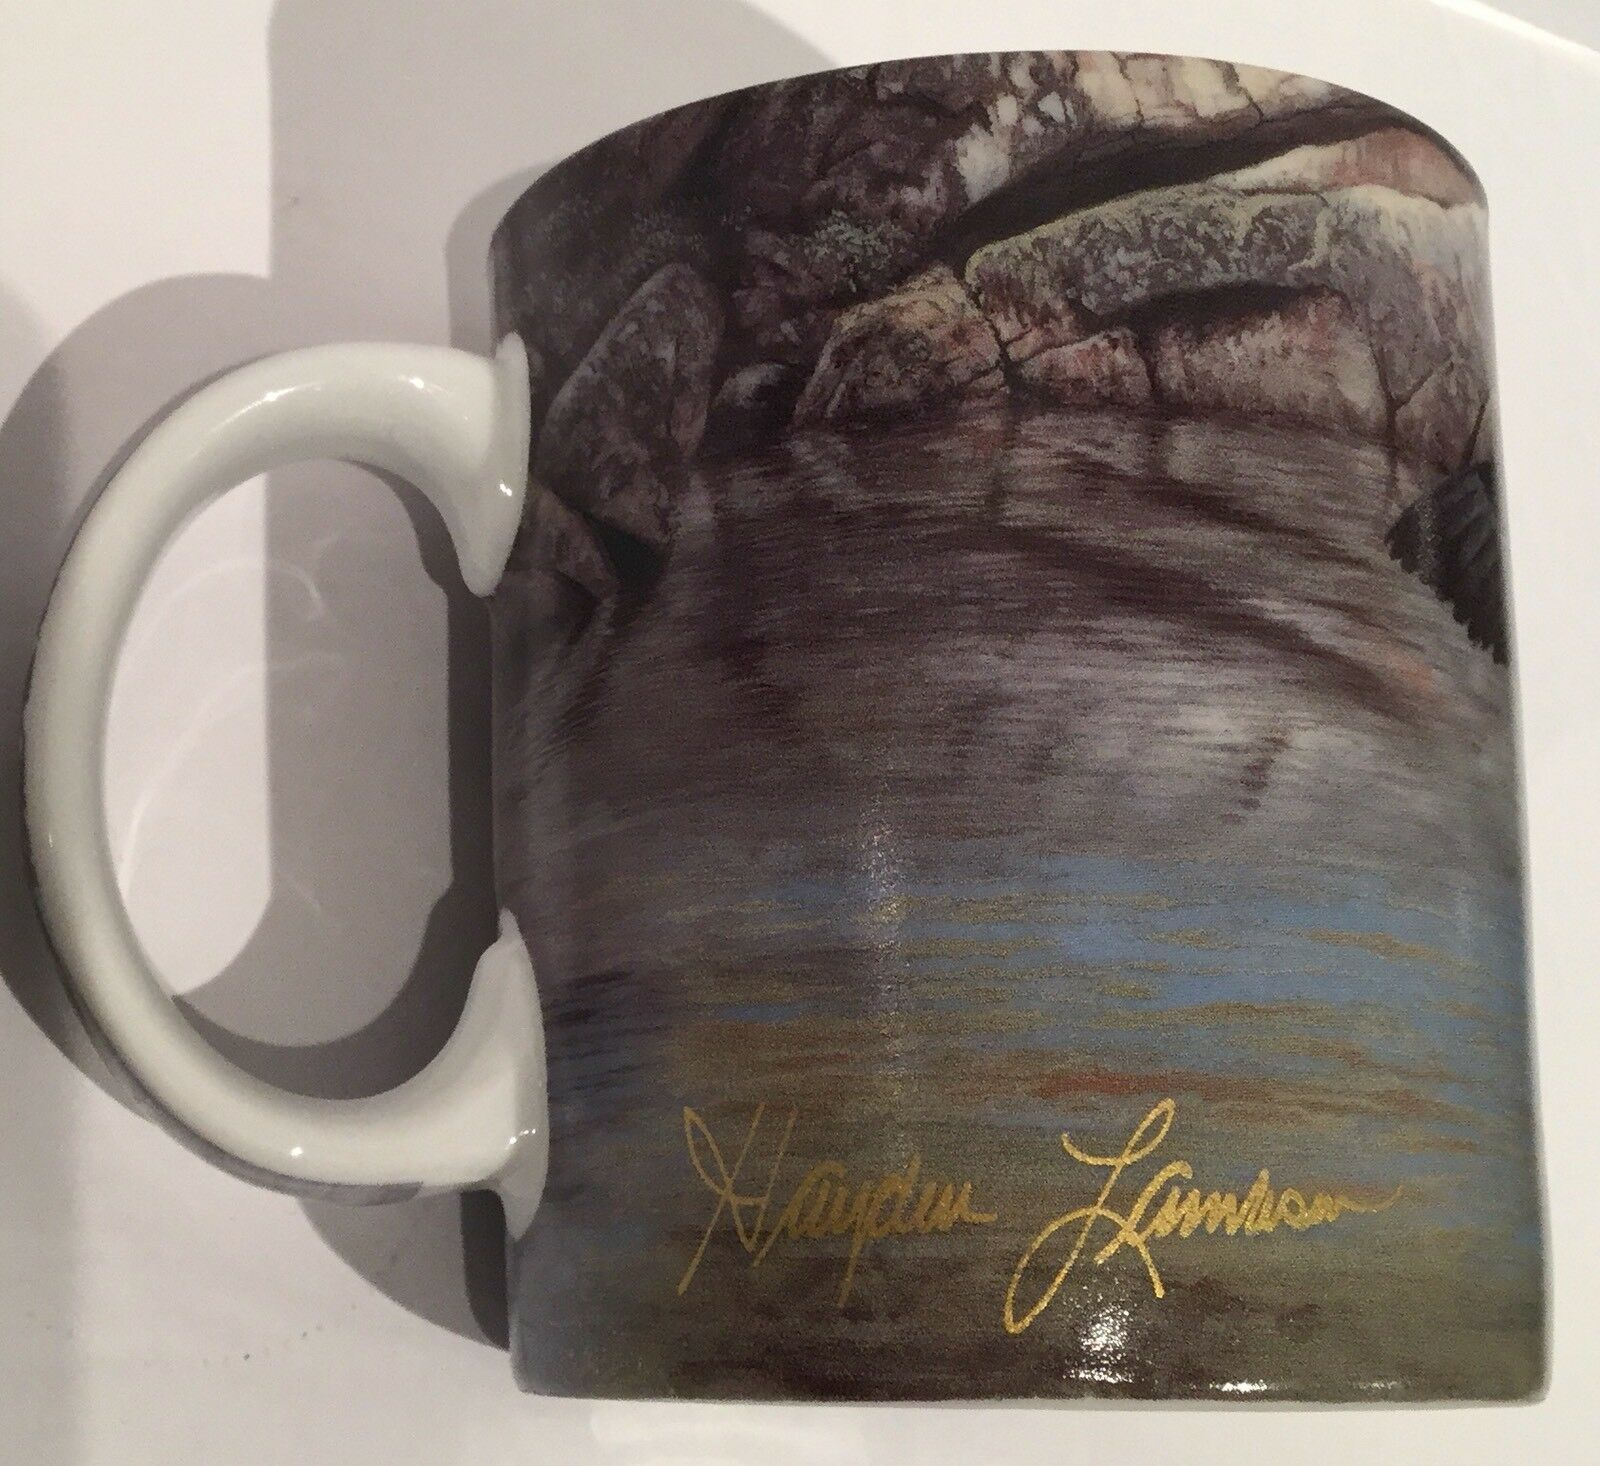 Mallard Coffee Mug Cup HONEYMOON COVE 2005 Lambson Wonderland Graphics Rare EUC